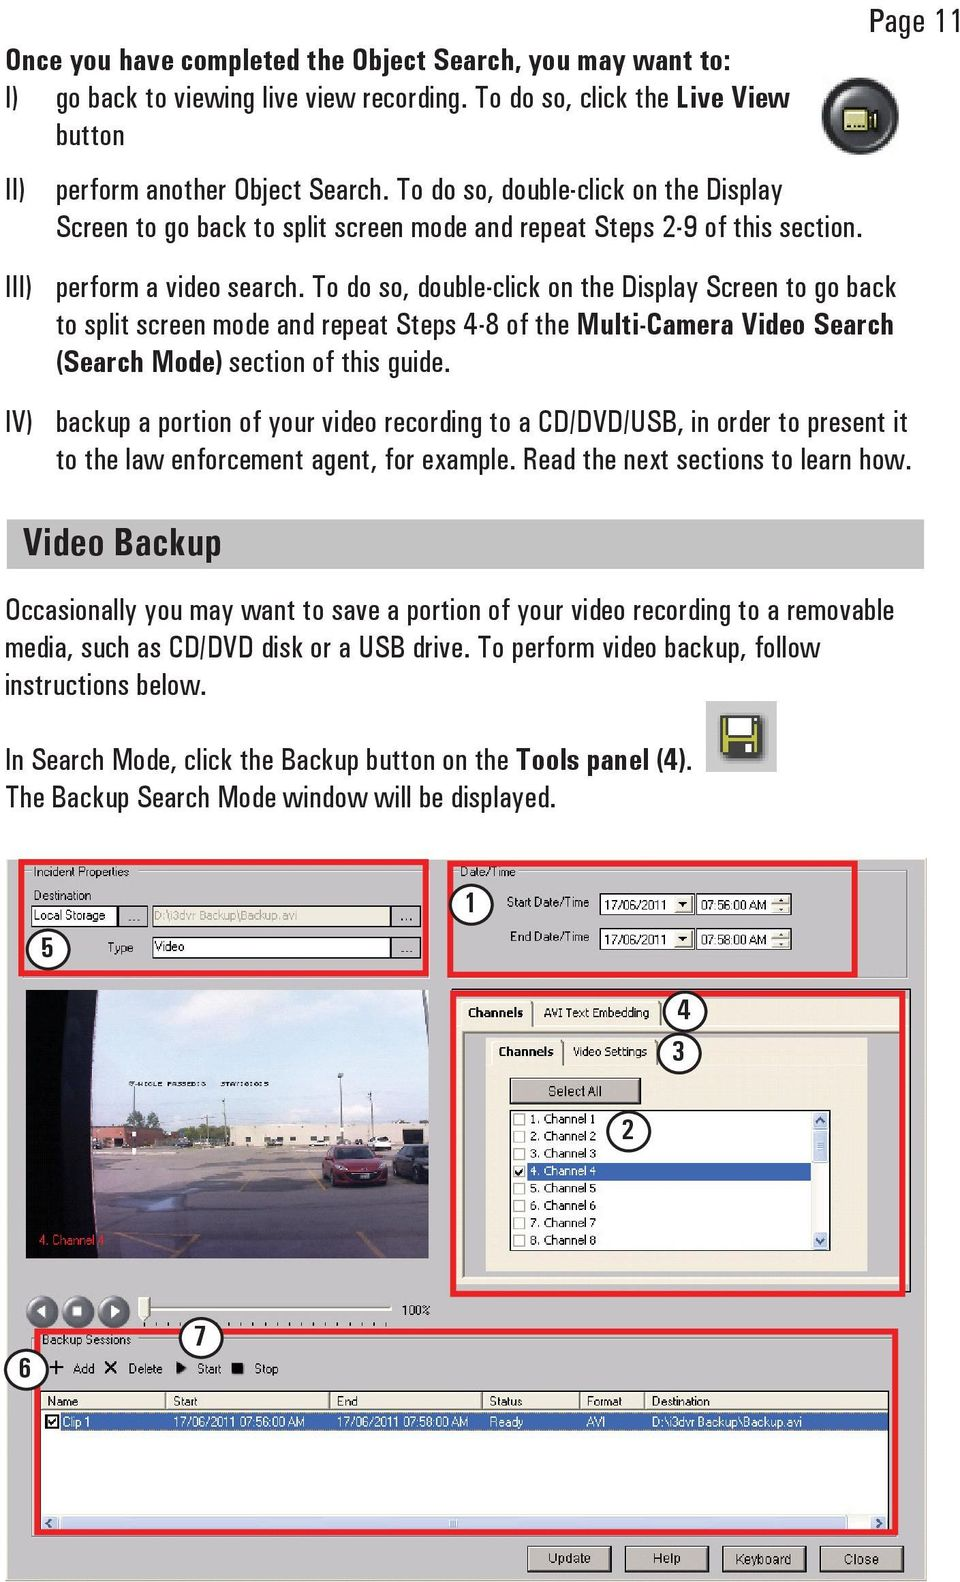 To do so, double-click on the Display Screen to go back to split screen mode and repeat Steps 4-8 of the Multi-Camera Video Search (Search Mode) section of this guide.